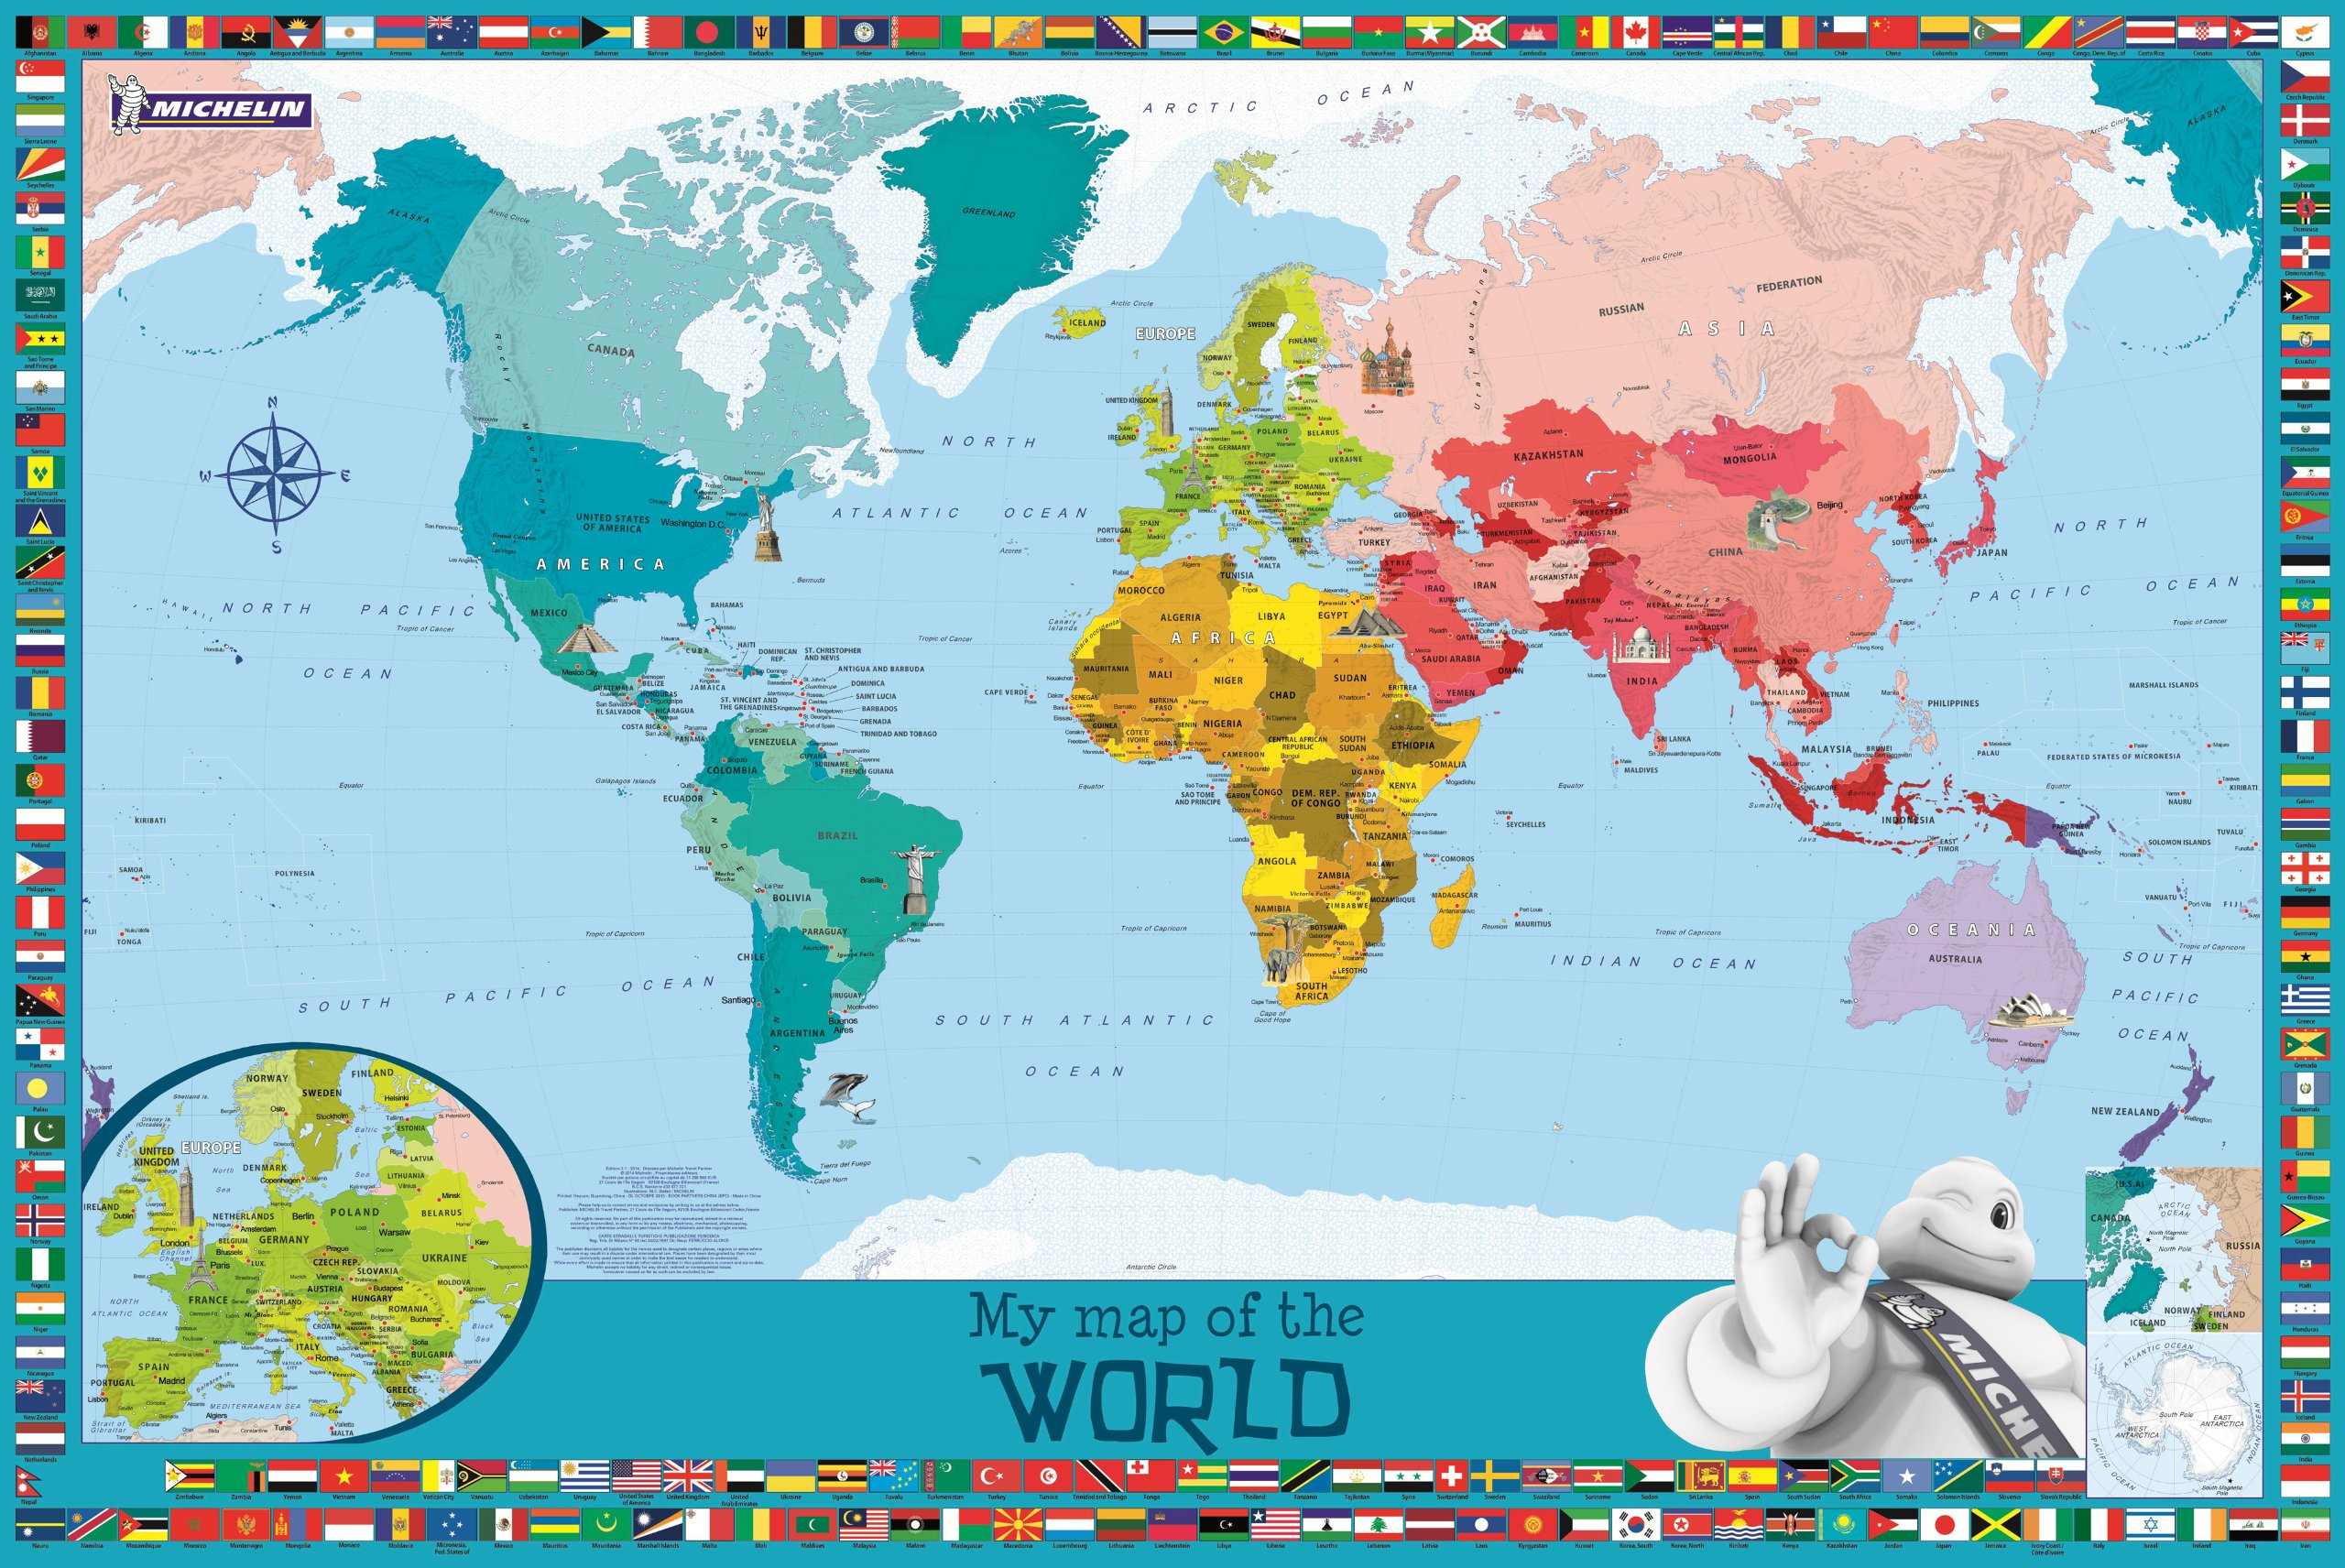 My map of the world childrens wall map map wall michelin my map of the world childrens wall map map wall michelin 9782067194014 amazon books sciox Image collections